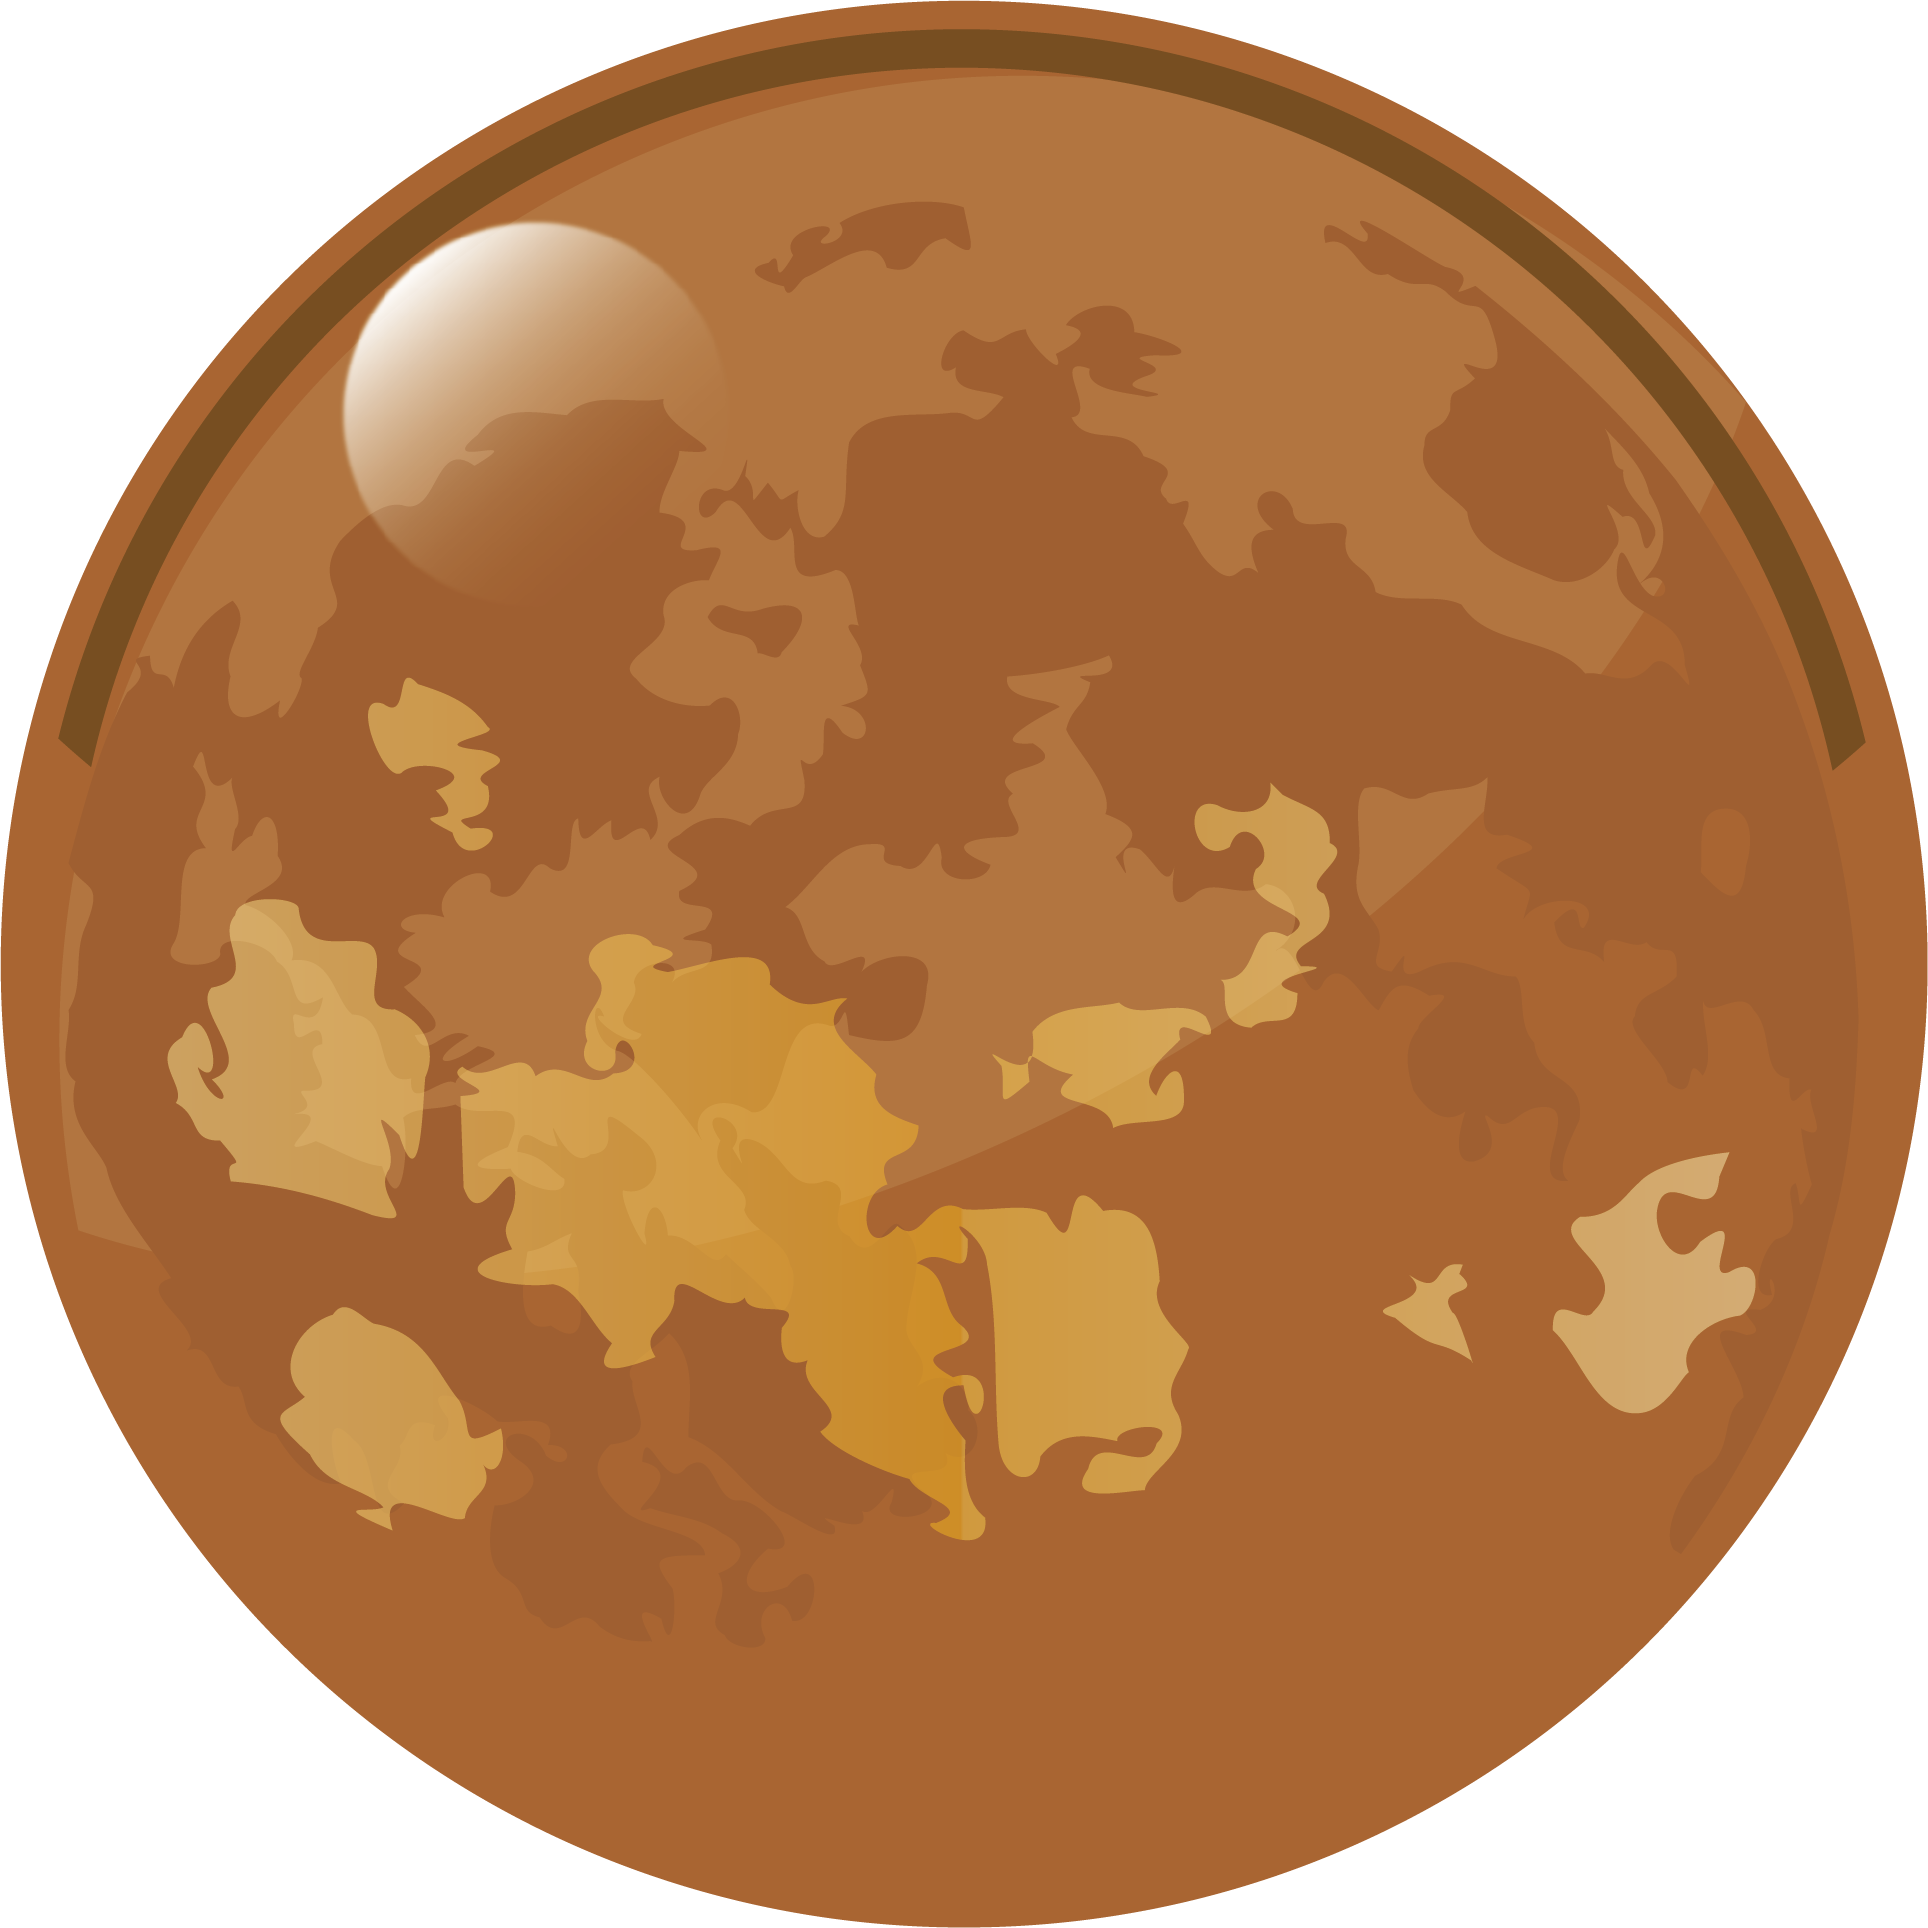 Planets clipart terrestrial planet. Earth mercury astrology ancient